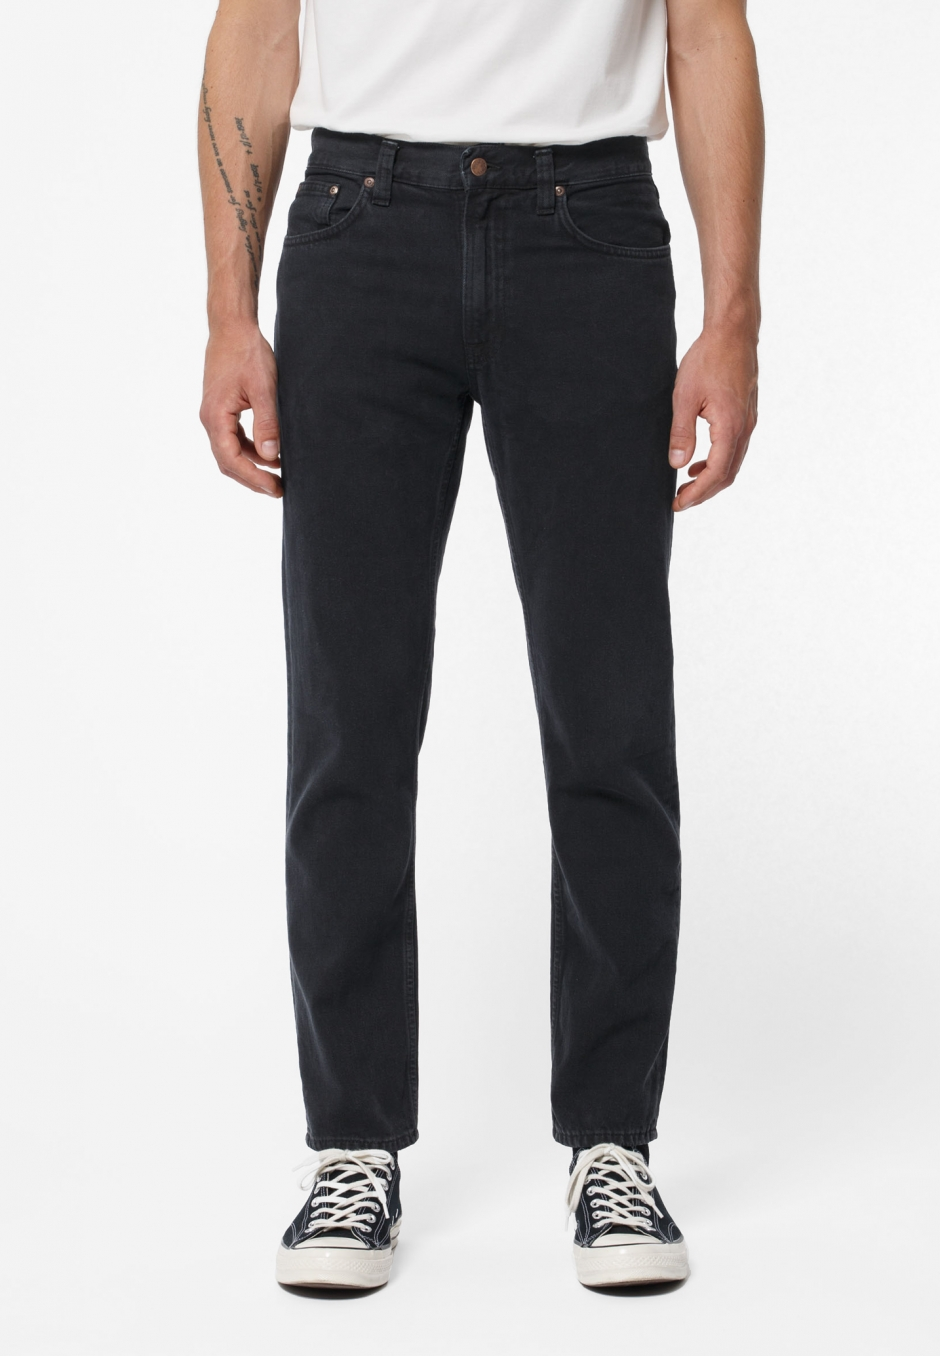 Nudie Jeans Gritty Jackson Black Forest